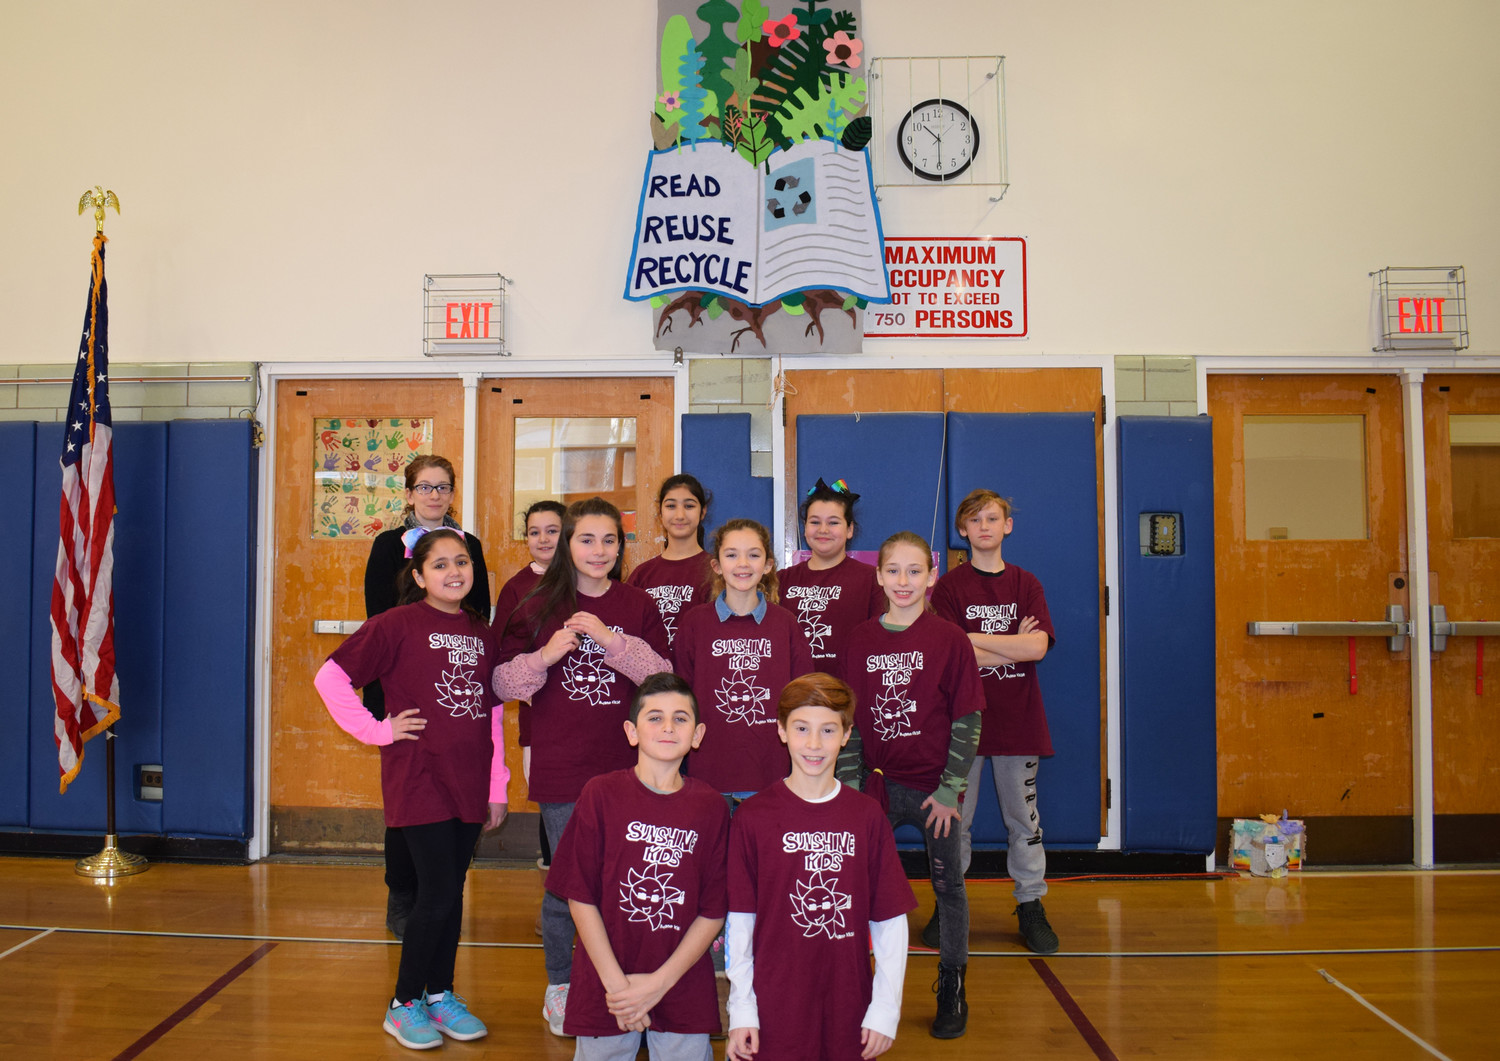 Glen Head School's art club stood proudly with their banner, which they created for the celebration.